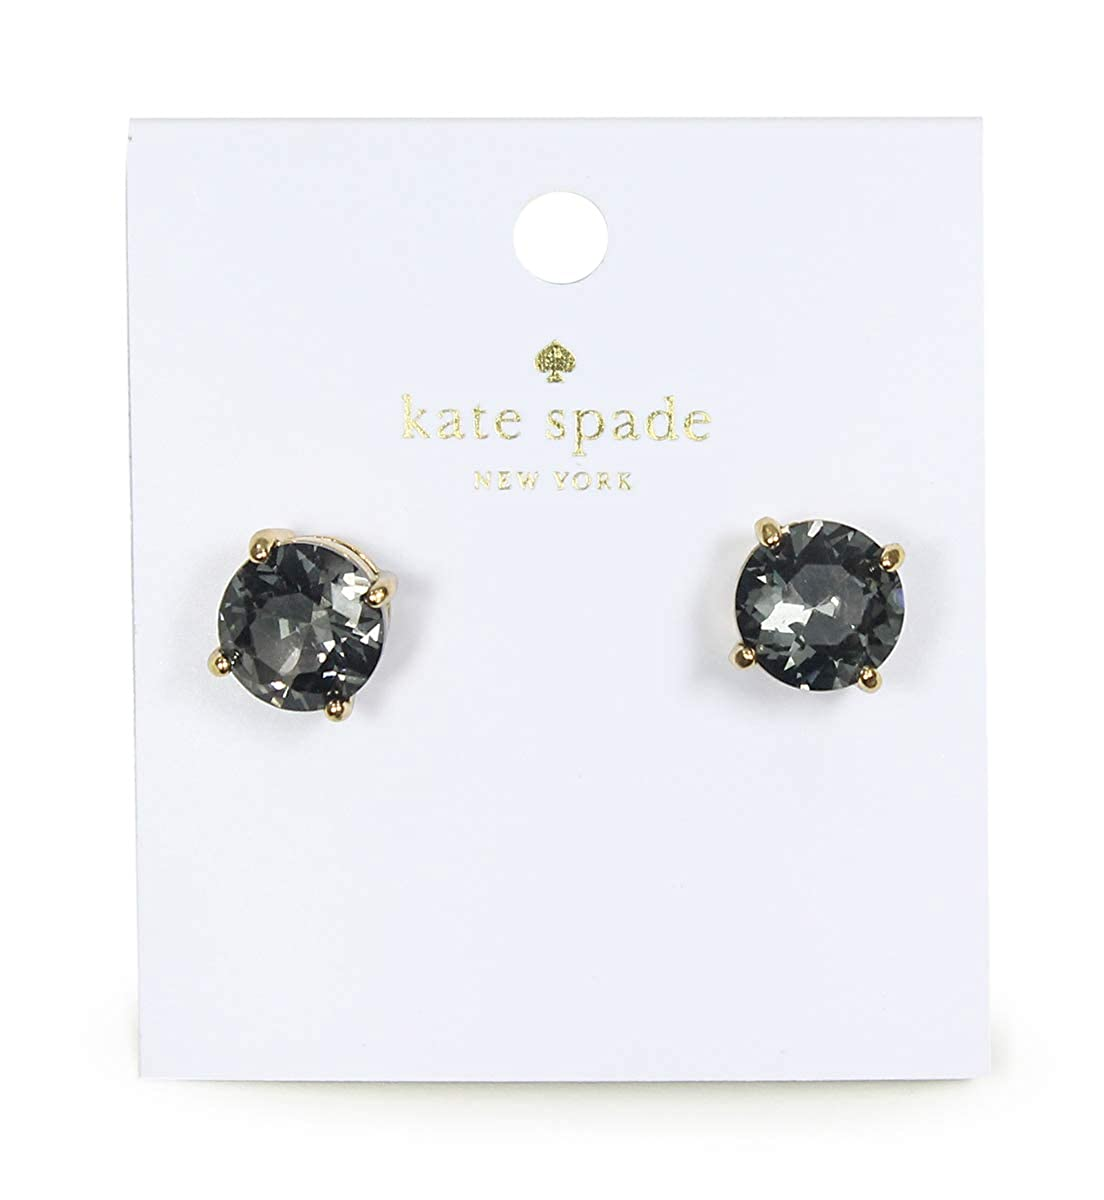 Kate Spade New York Kate Spade Earrings O0RU0667